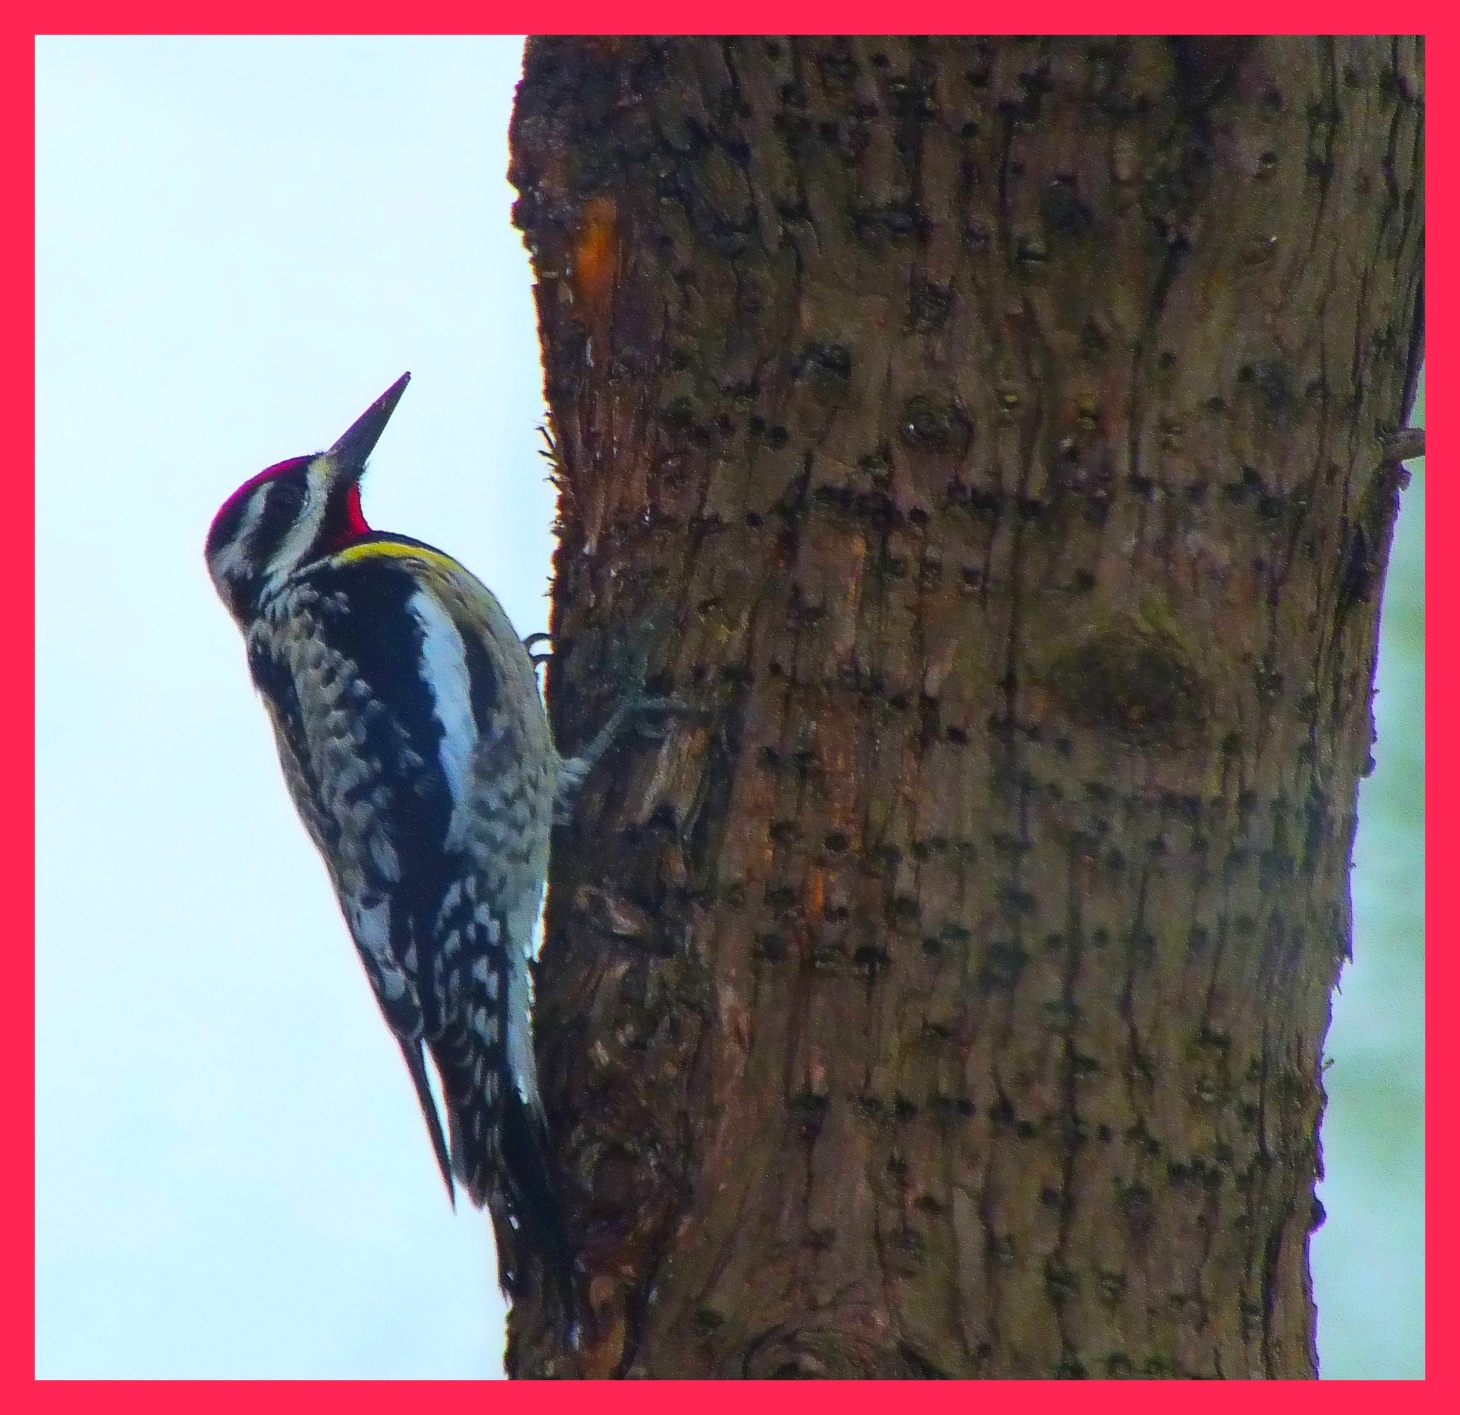 Male Yellow-bellied Sapsucker. Photo by Thomas Peace c. 2015